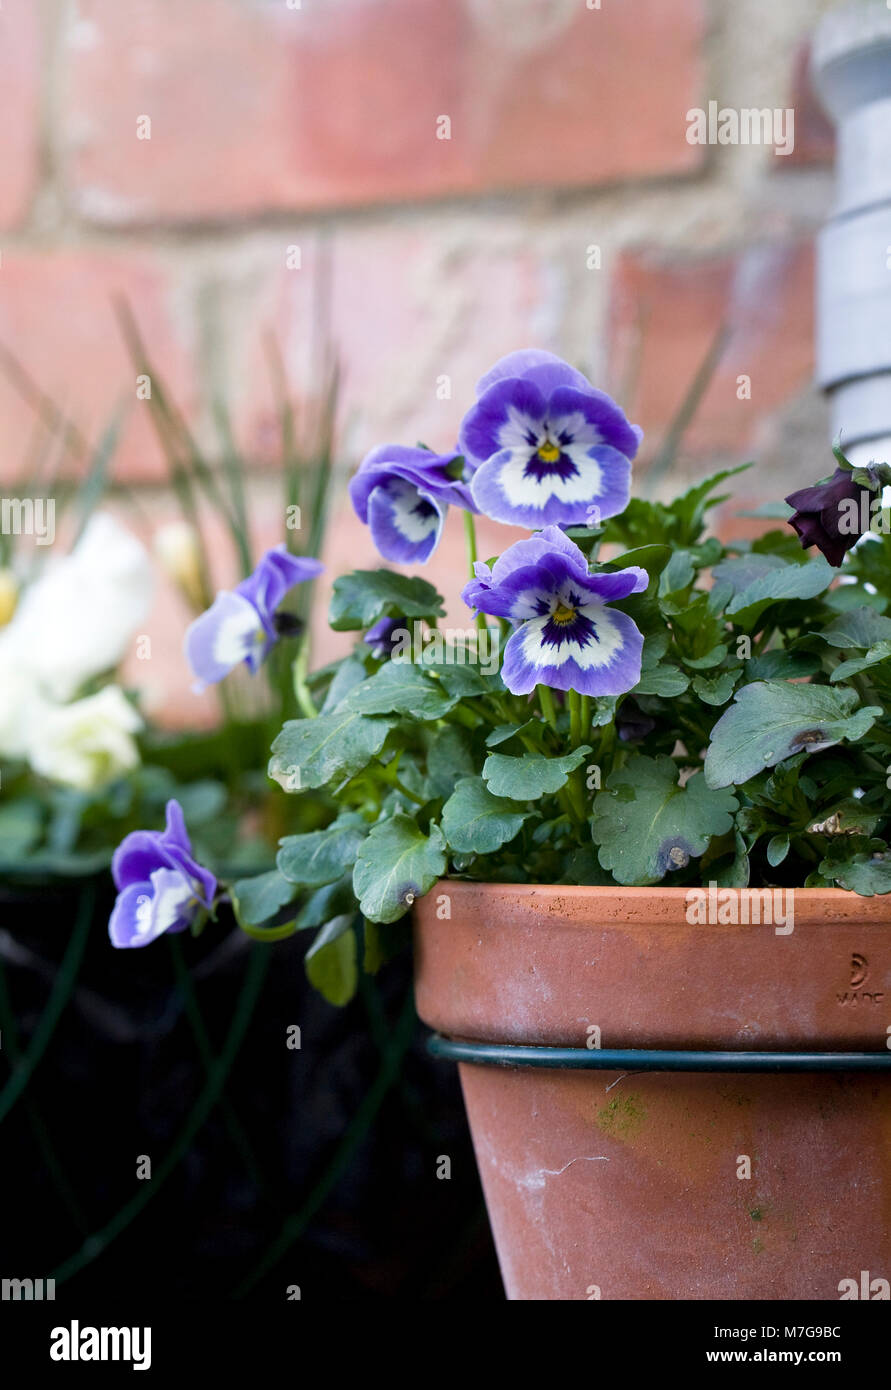 Drainpipe pot holders. Winter pansy flowers. - Stock Image